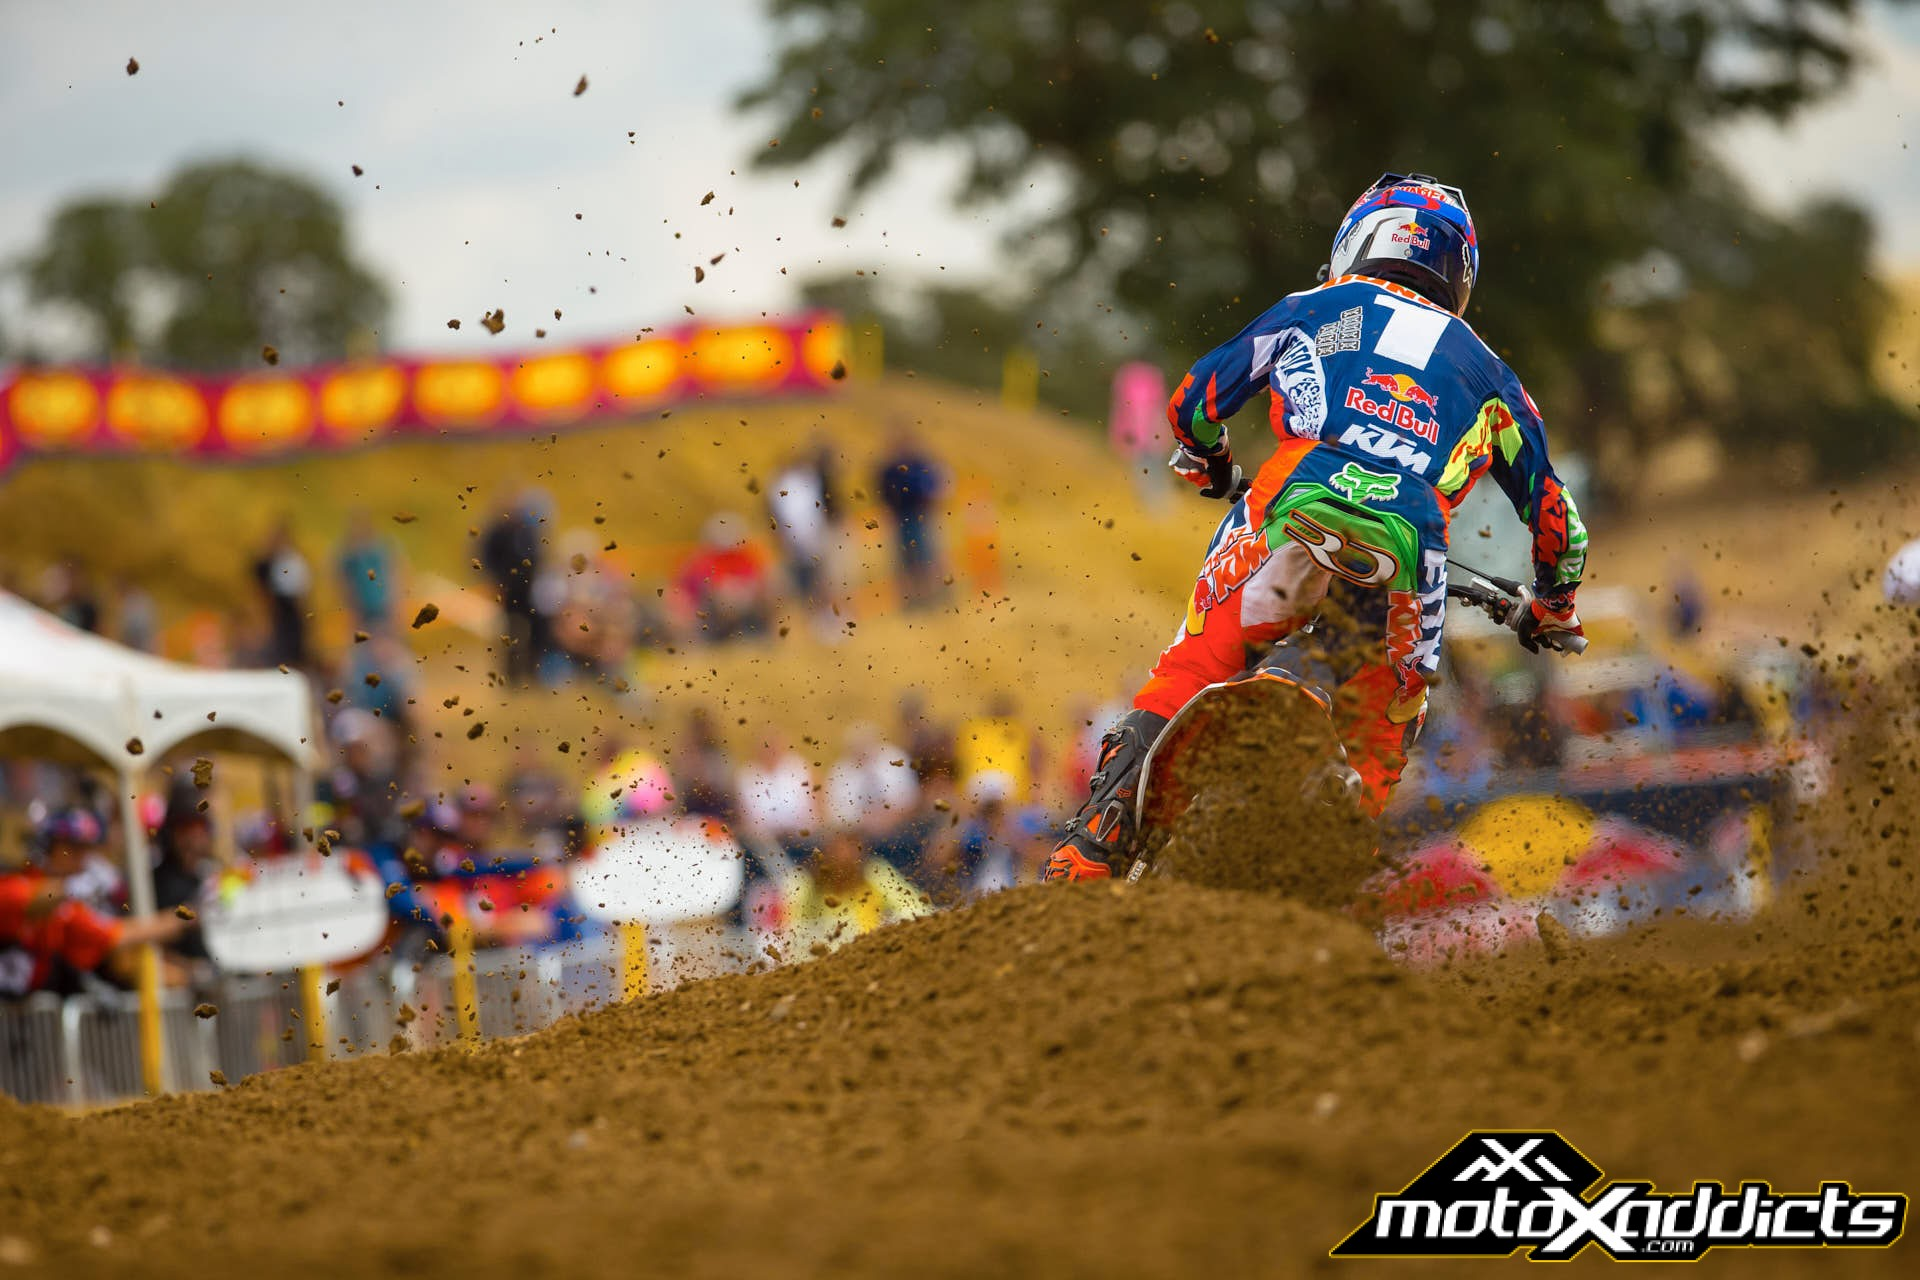 Ryan Dungey had the fastest lap, but could not keep the #94 in sight. Photo by: Hoppenworld